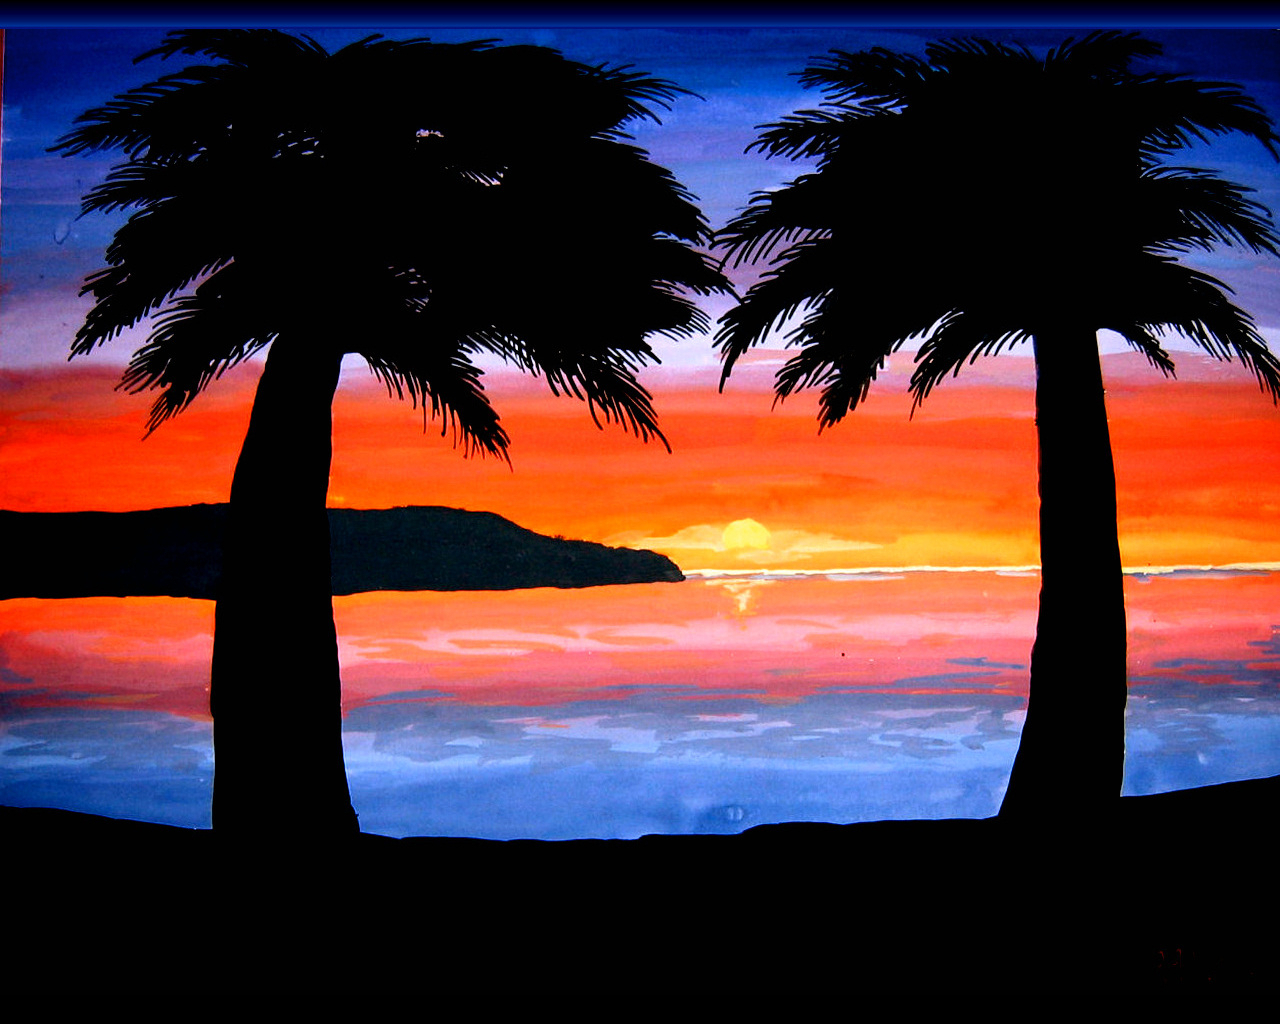 1280x1024 Sunset Colored Pencil Sunset Drawing In Colored Pencil